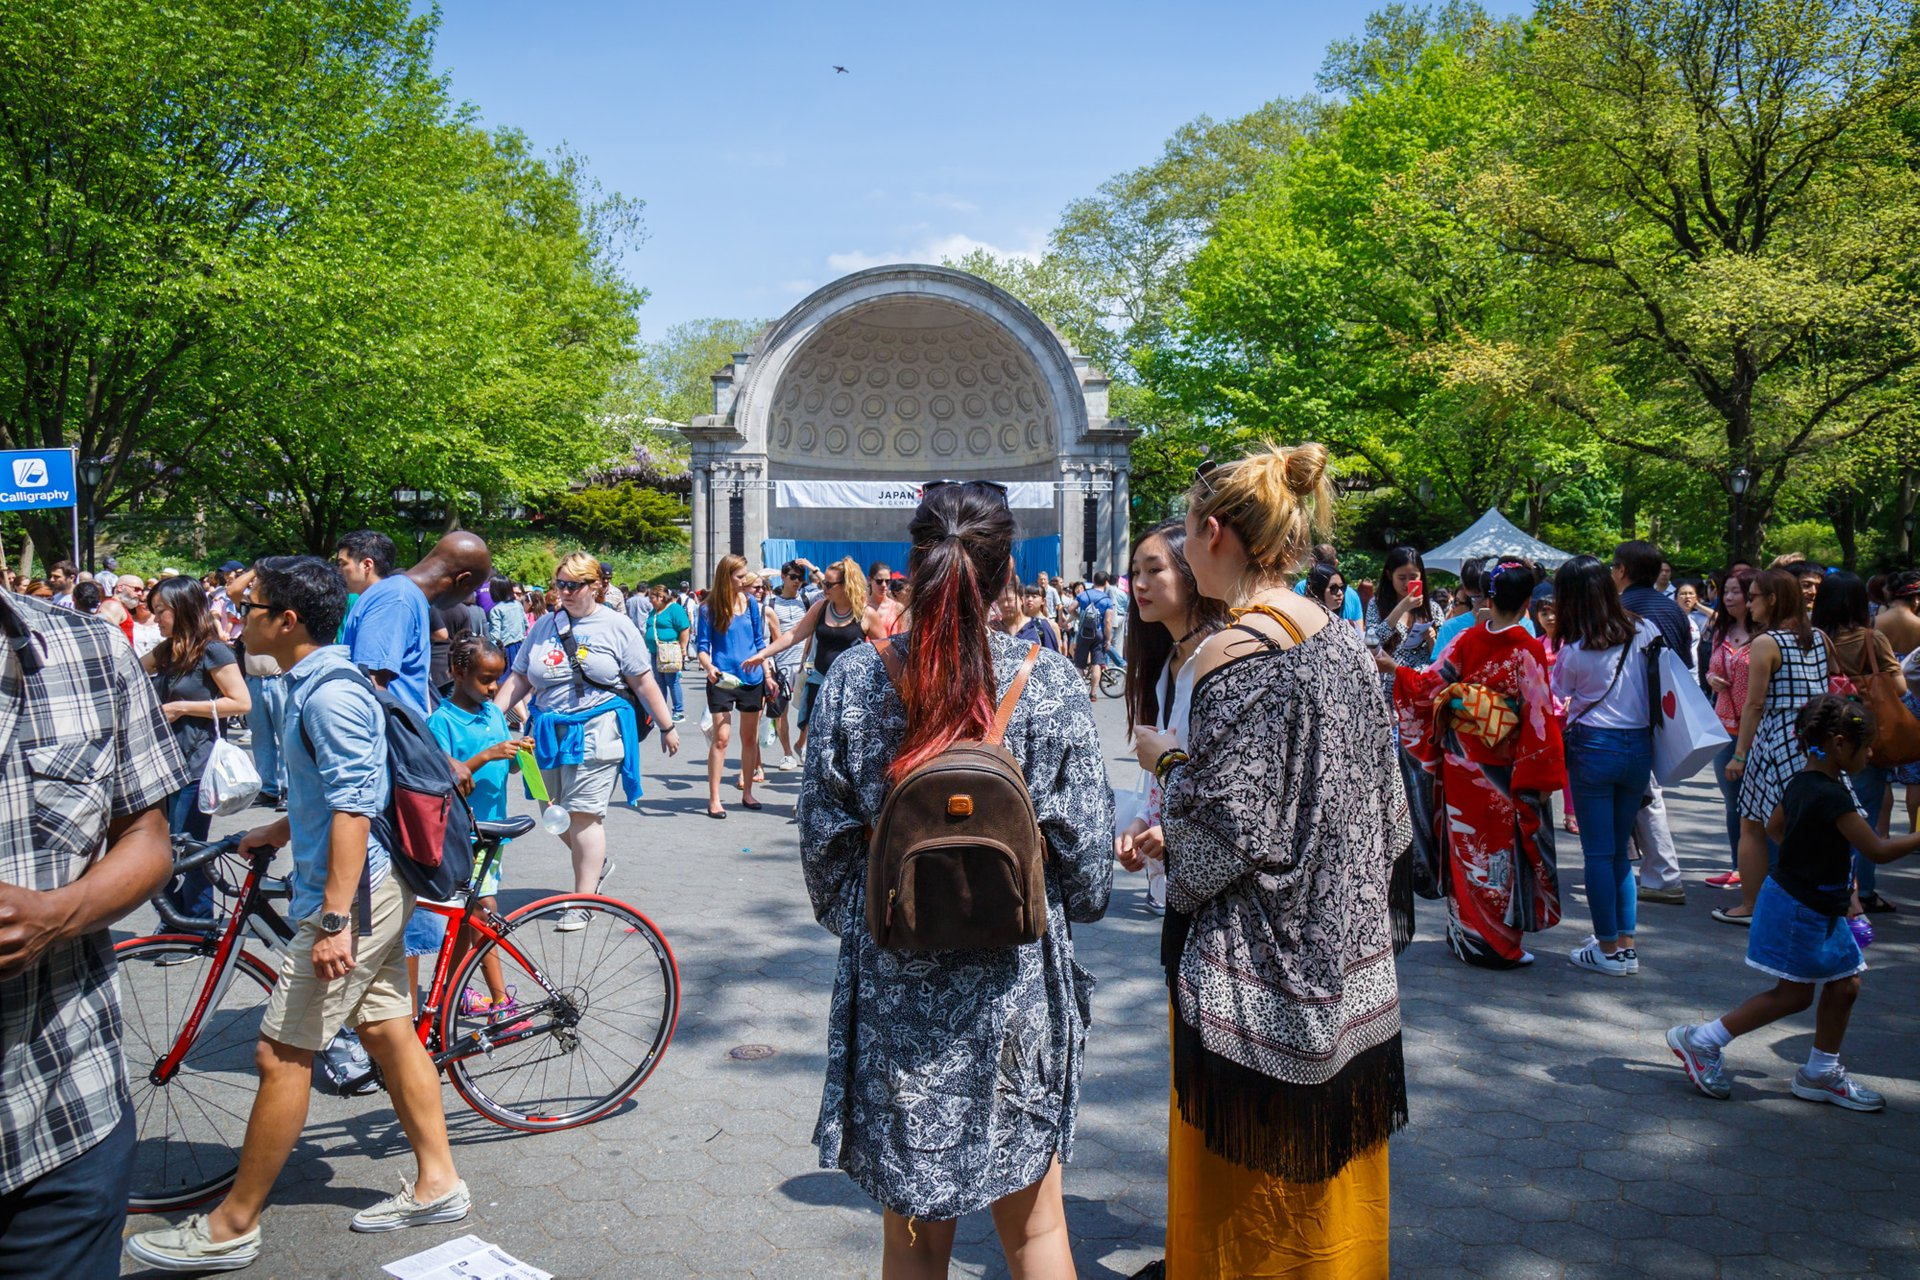 Japan Day @ Central Park in New York - Best Season 2020